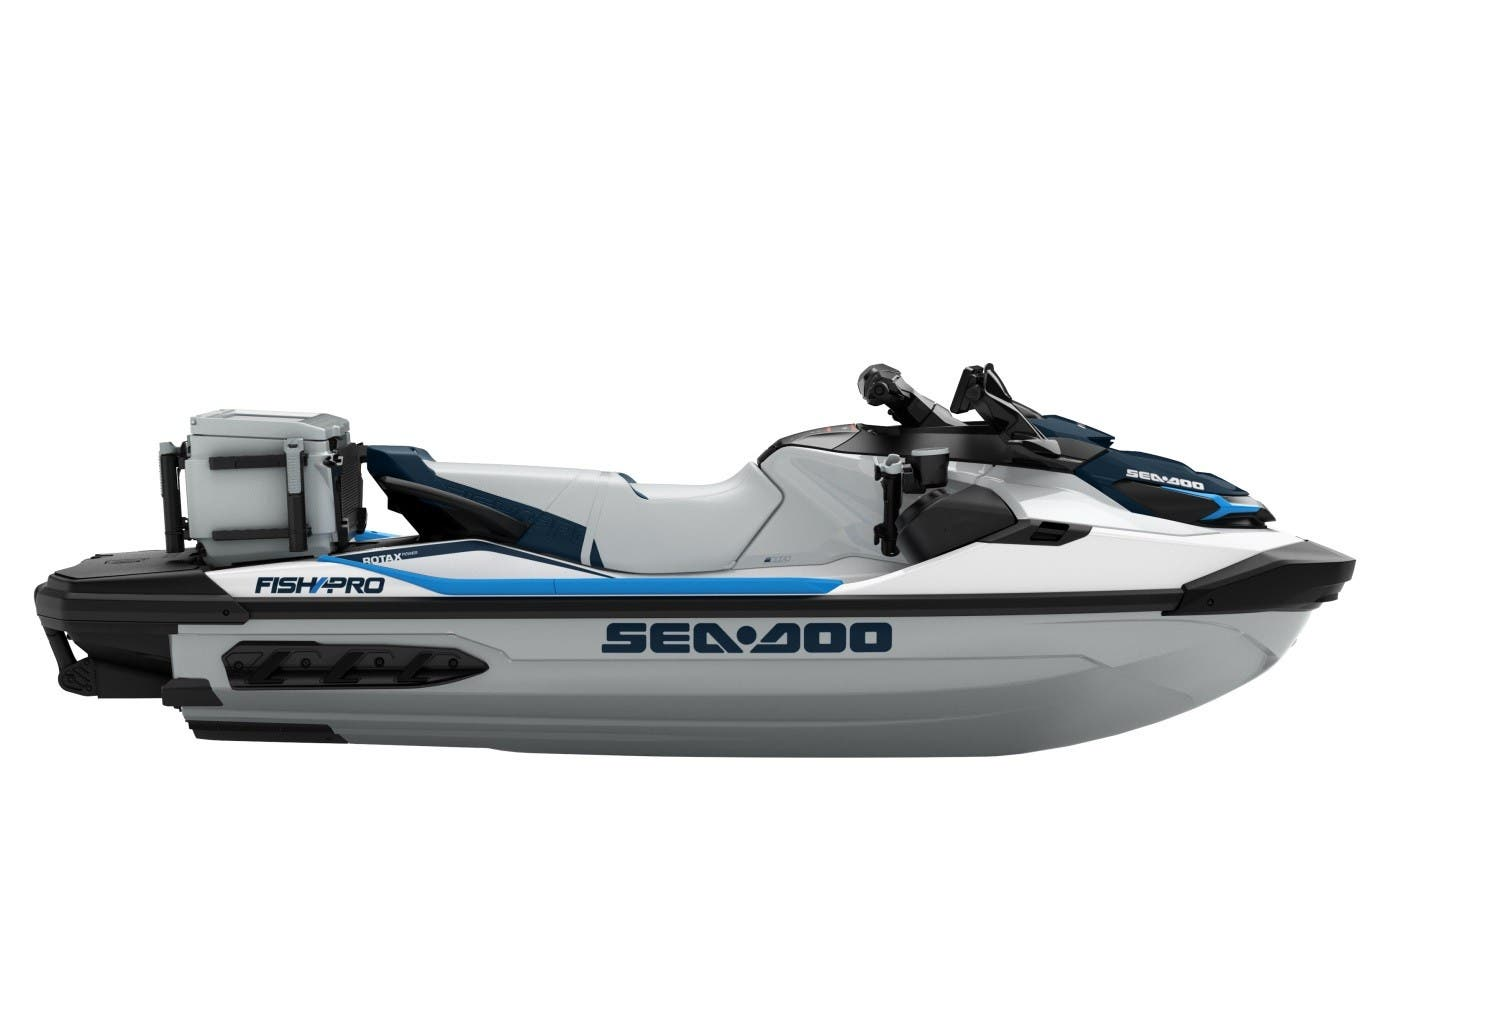 2021 Sea Doo PWC boat for sale, model of the boat is FISH PRO 170 SS IDF & Image # 6 of 6